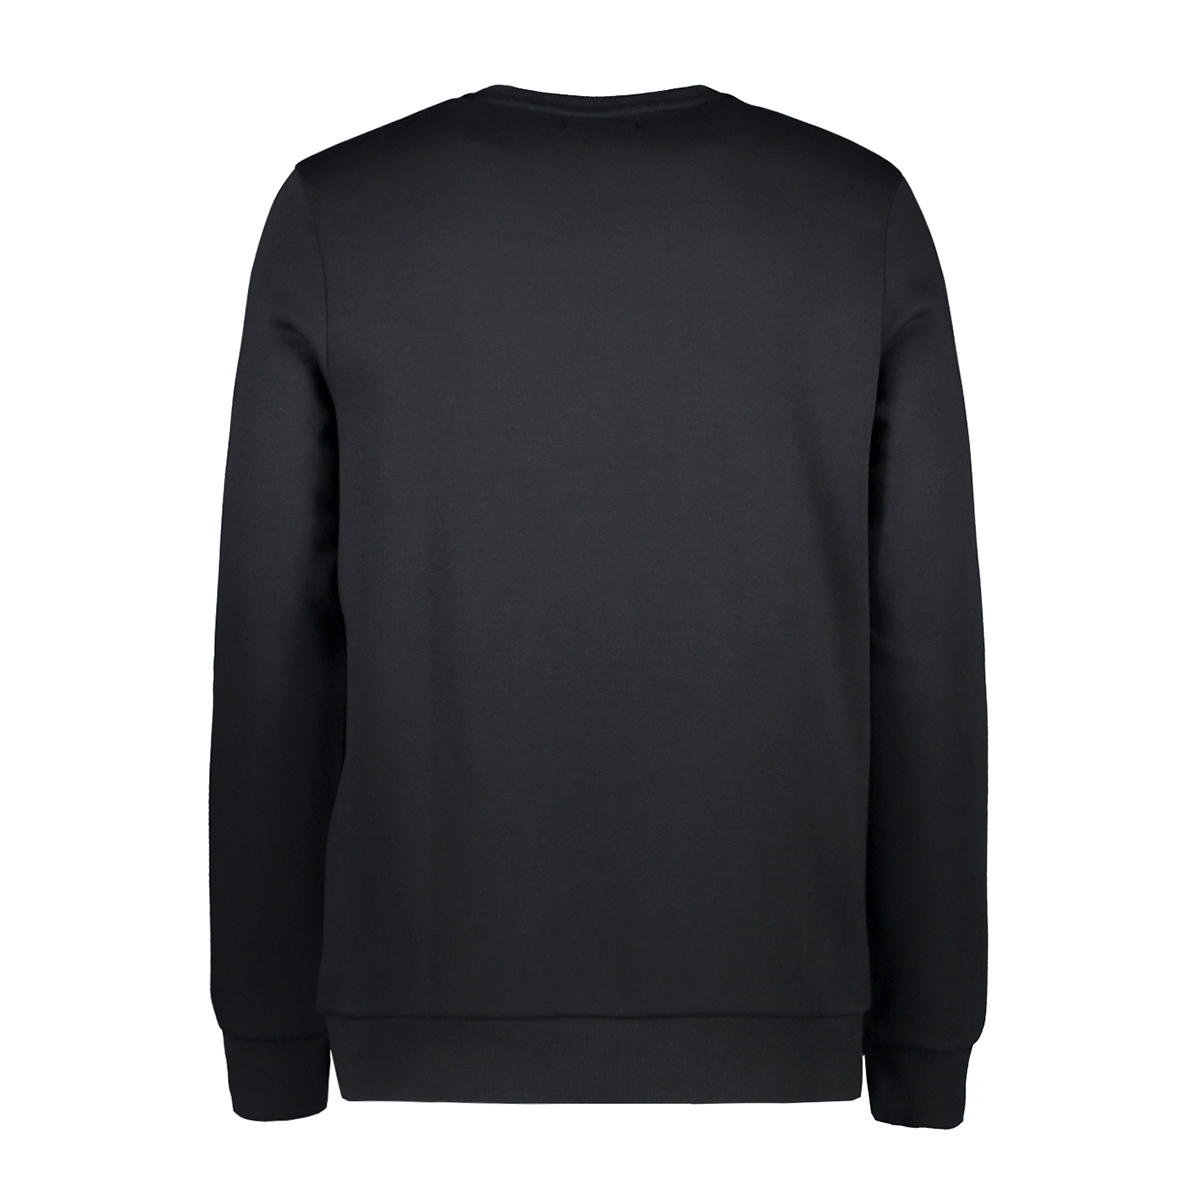 olivier sw 4391001 cars sweater black